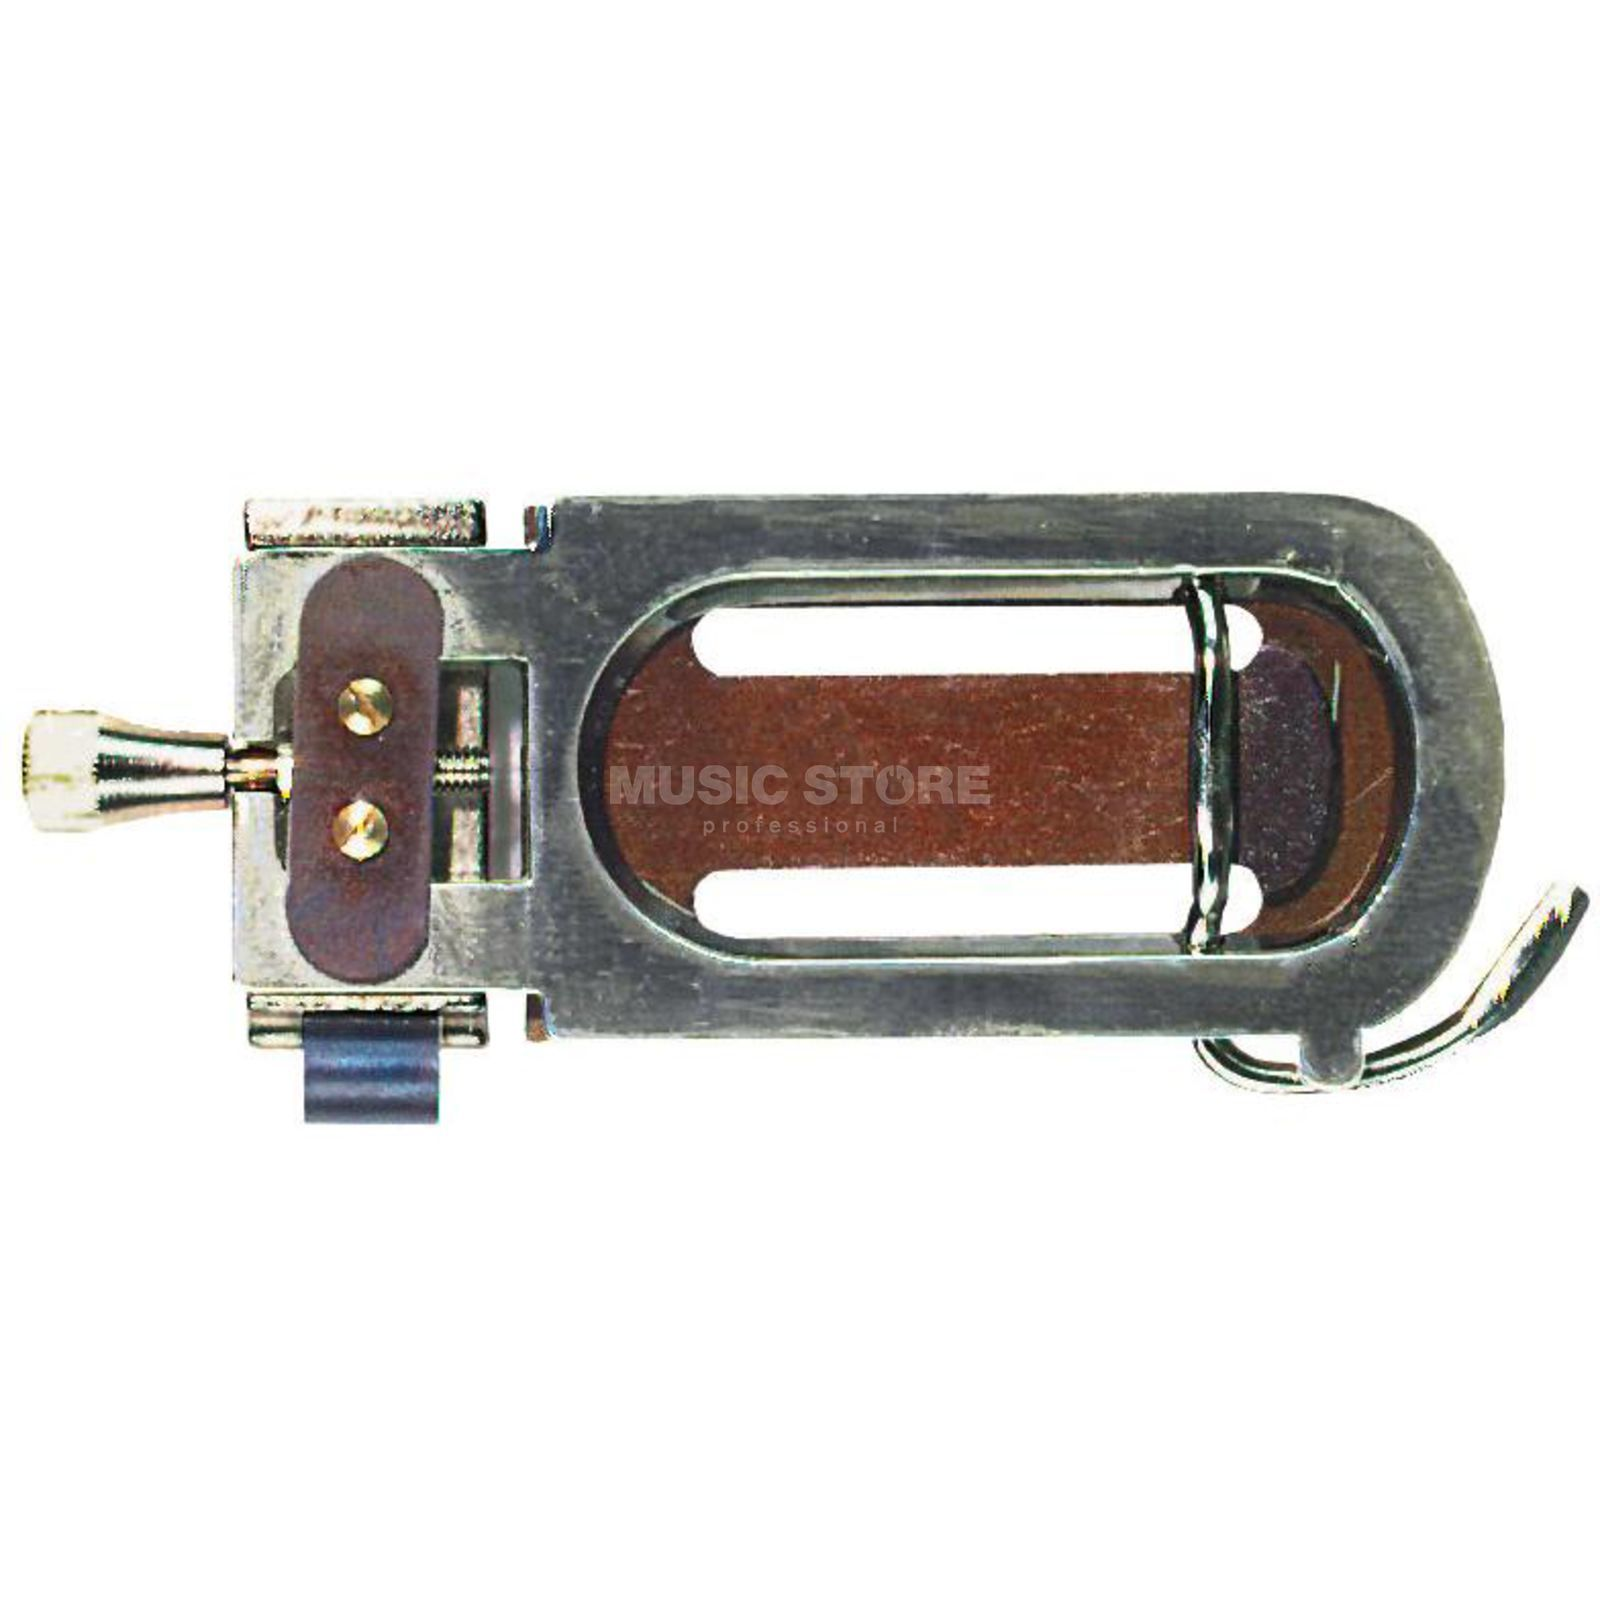 Cordier Reed Cutter Tenor Saxophone Product Image